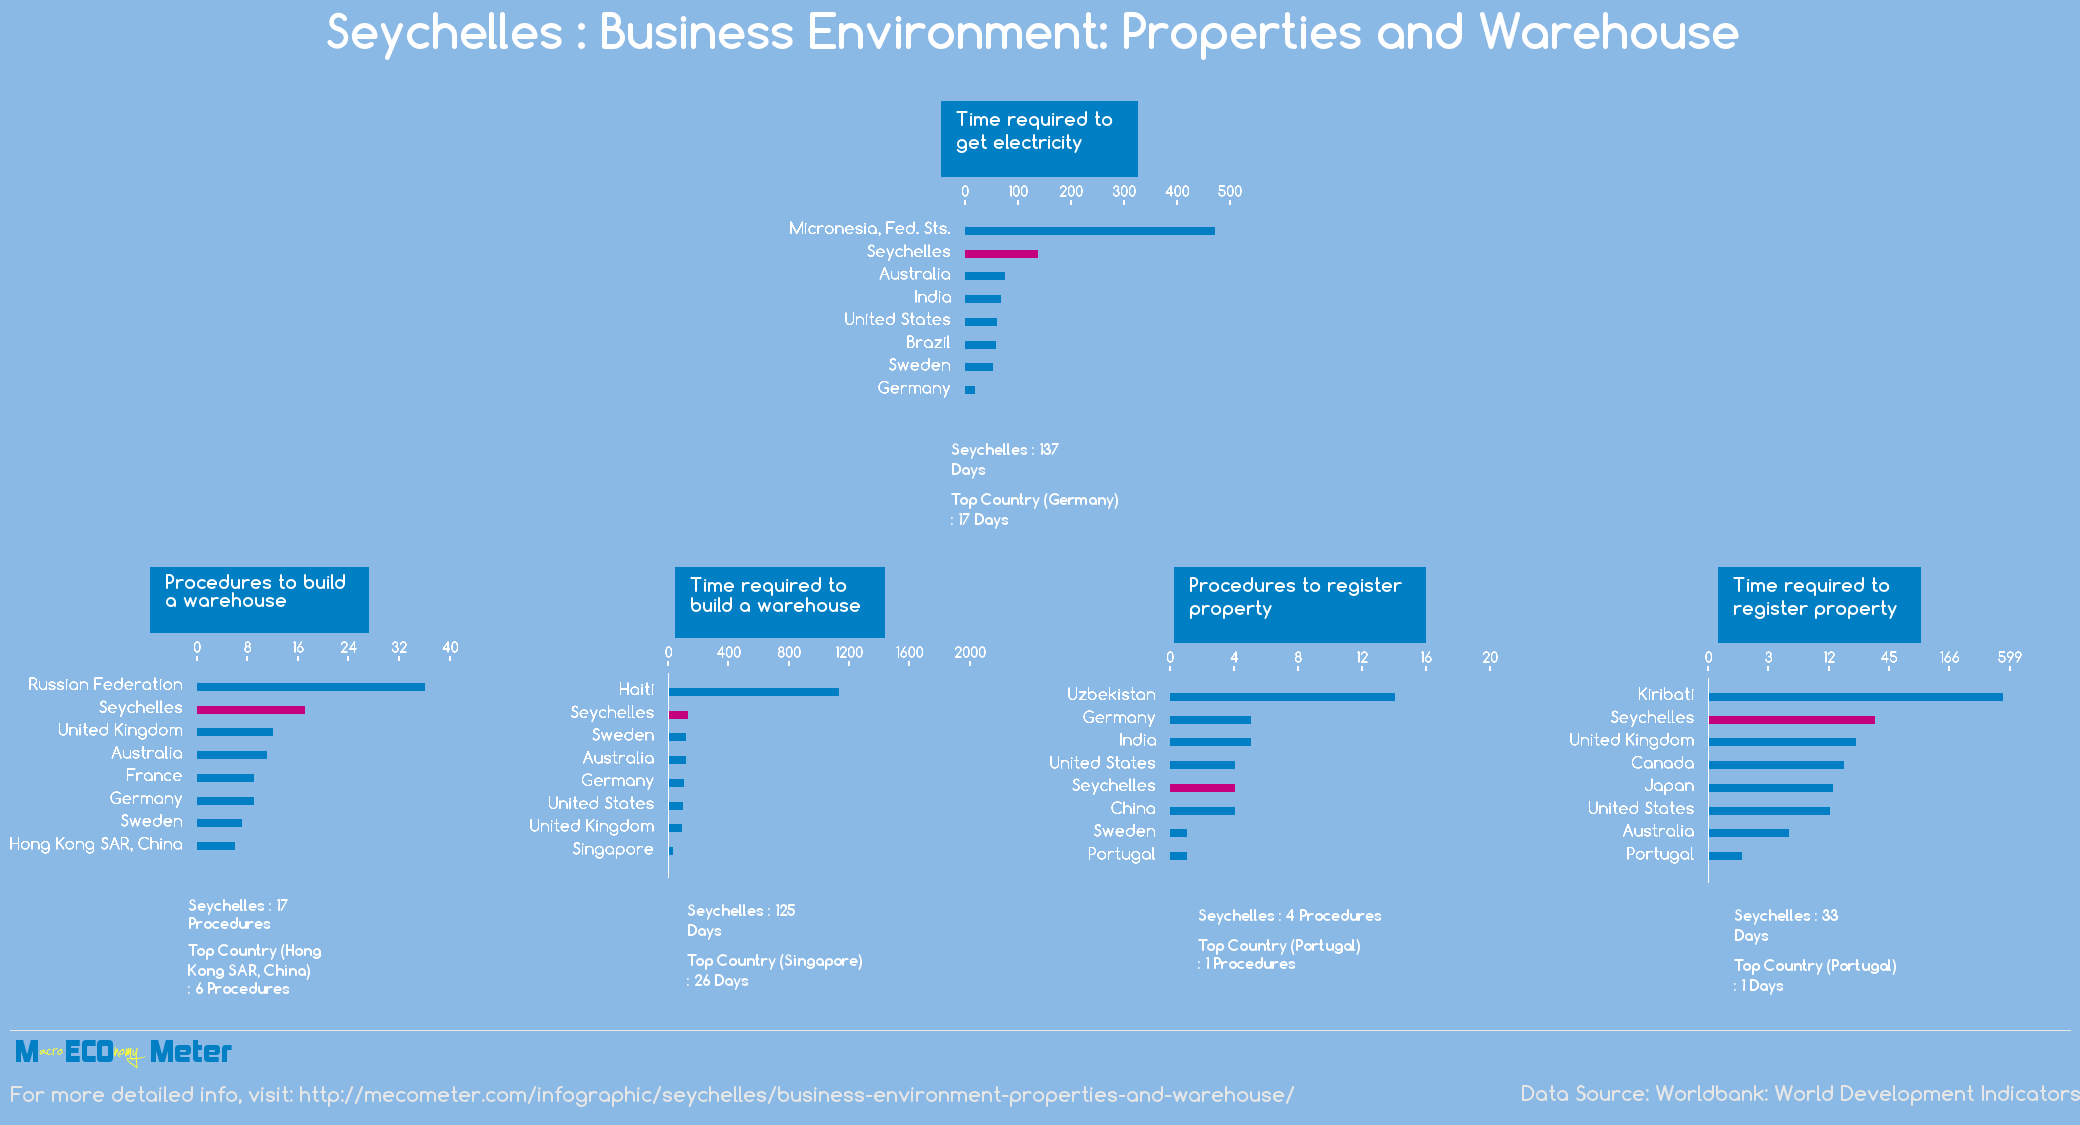 Seychelles : Business Environment: Properties and Warehouse